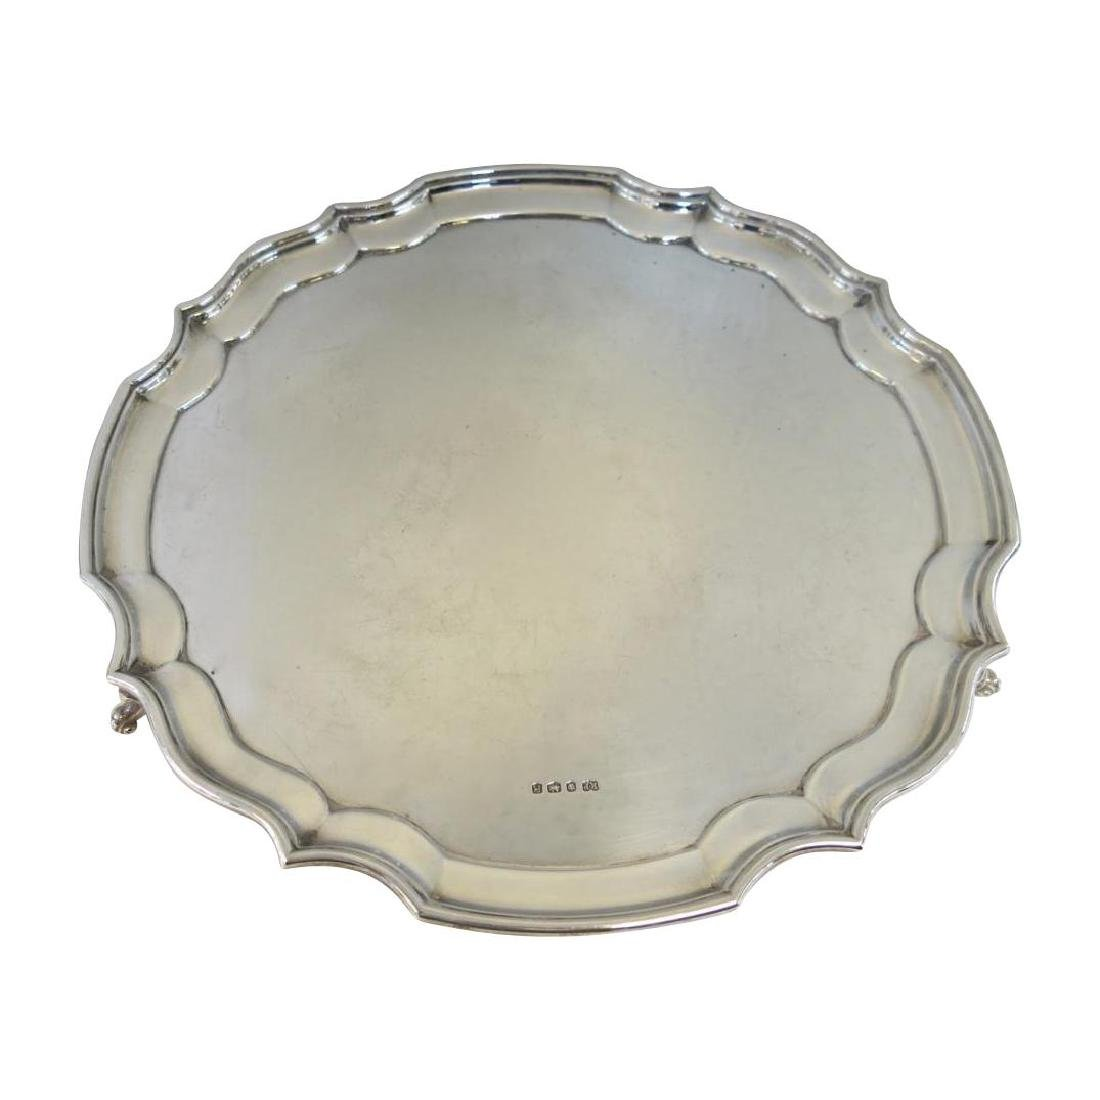 Robert Pringle & Sons Sterling Silver Footed Tray